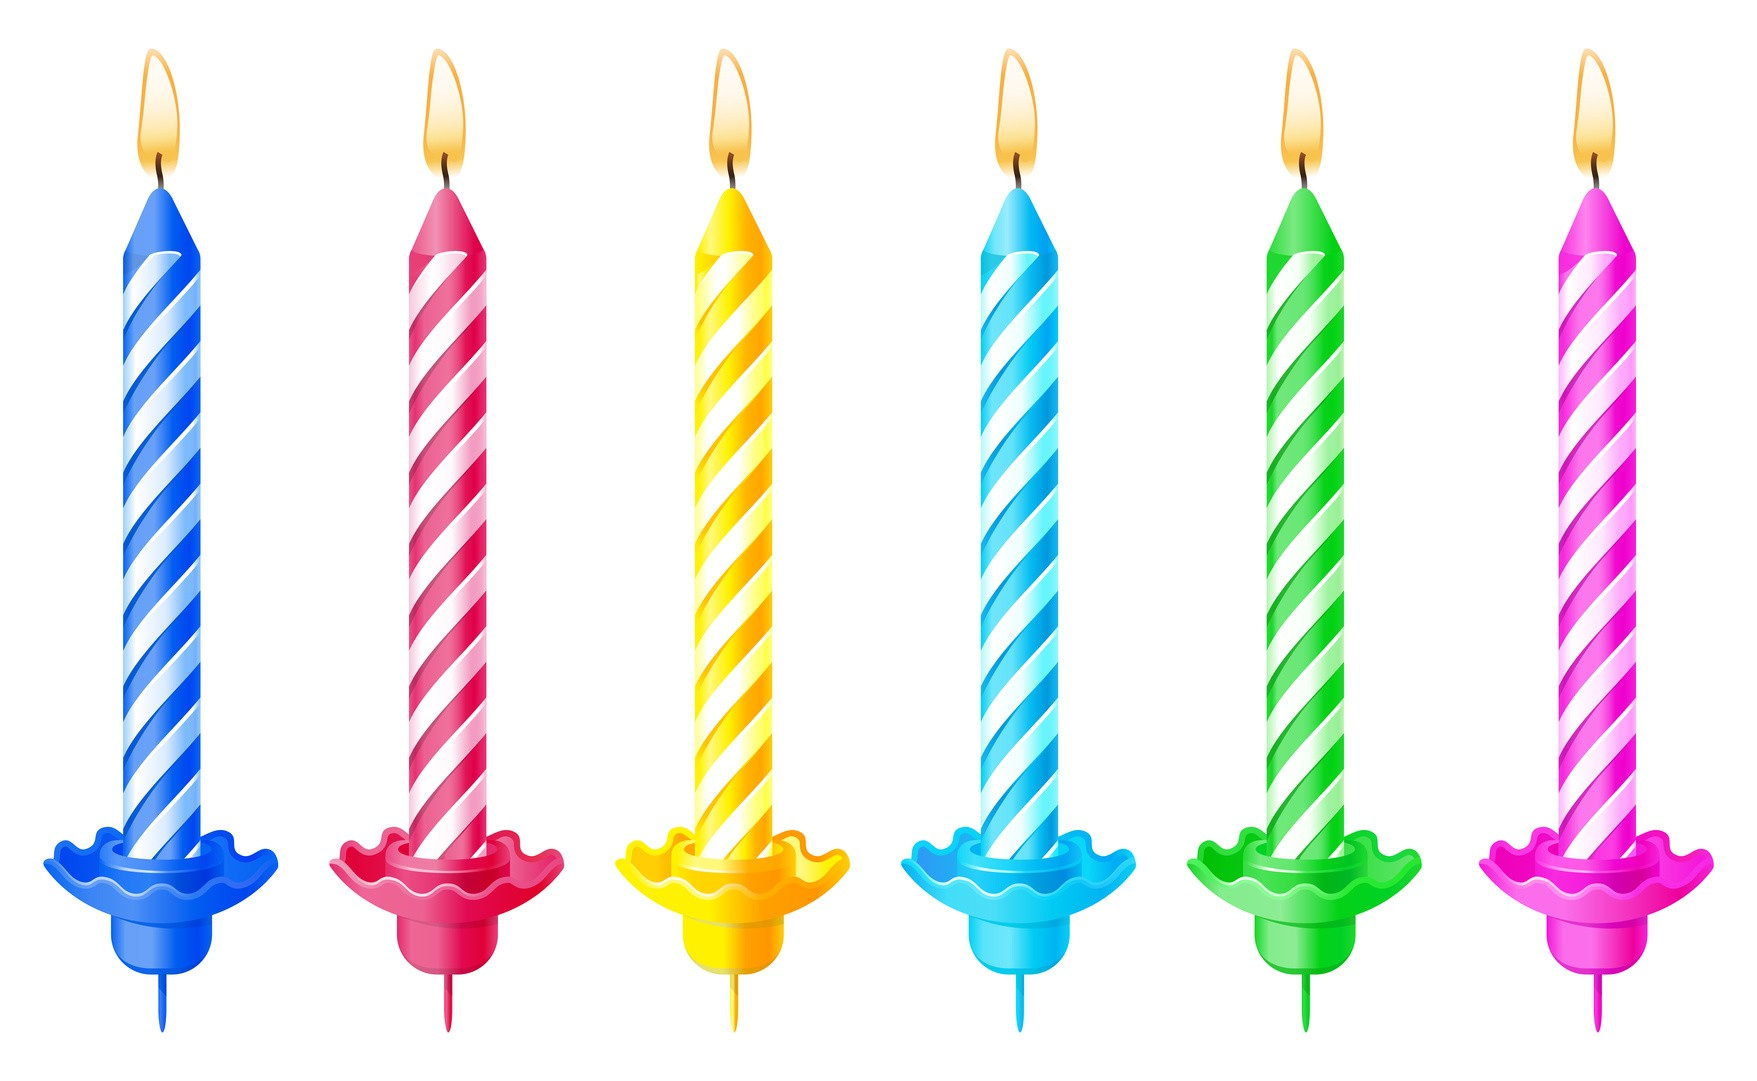 Candles suppliers in mumbai. Candle clipart happy birthday